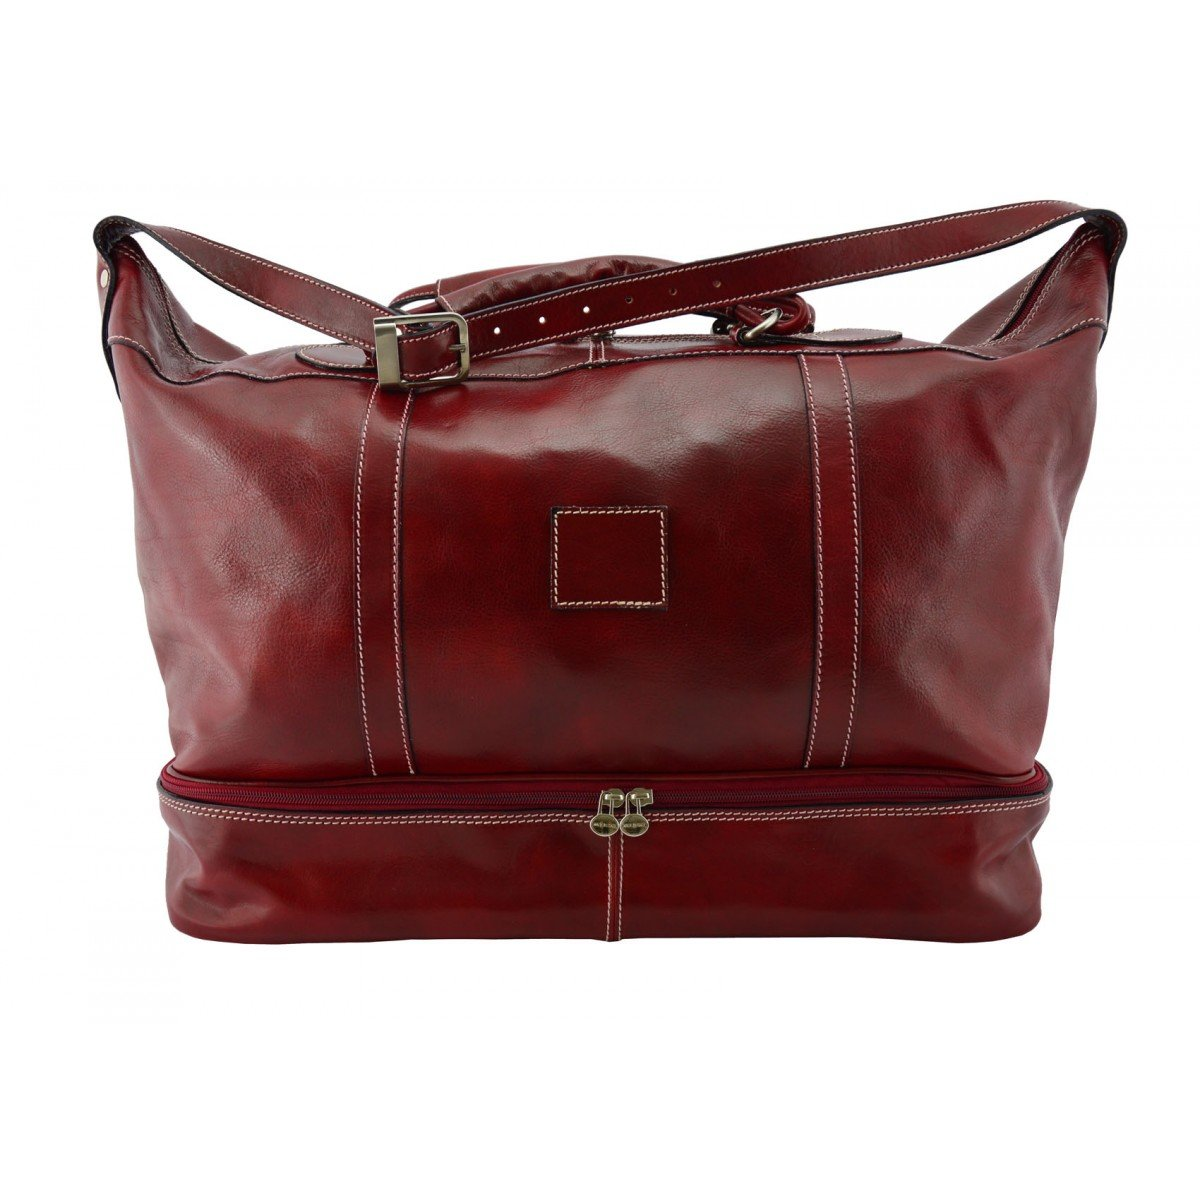 Dream Leather Bags Made in Italy Genuine Leather メンズ US サイズ: 1 カラー: レッド B072MFHJ1P